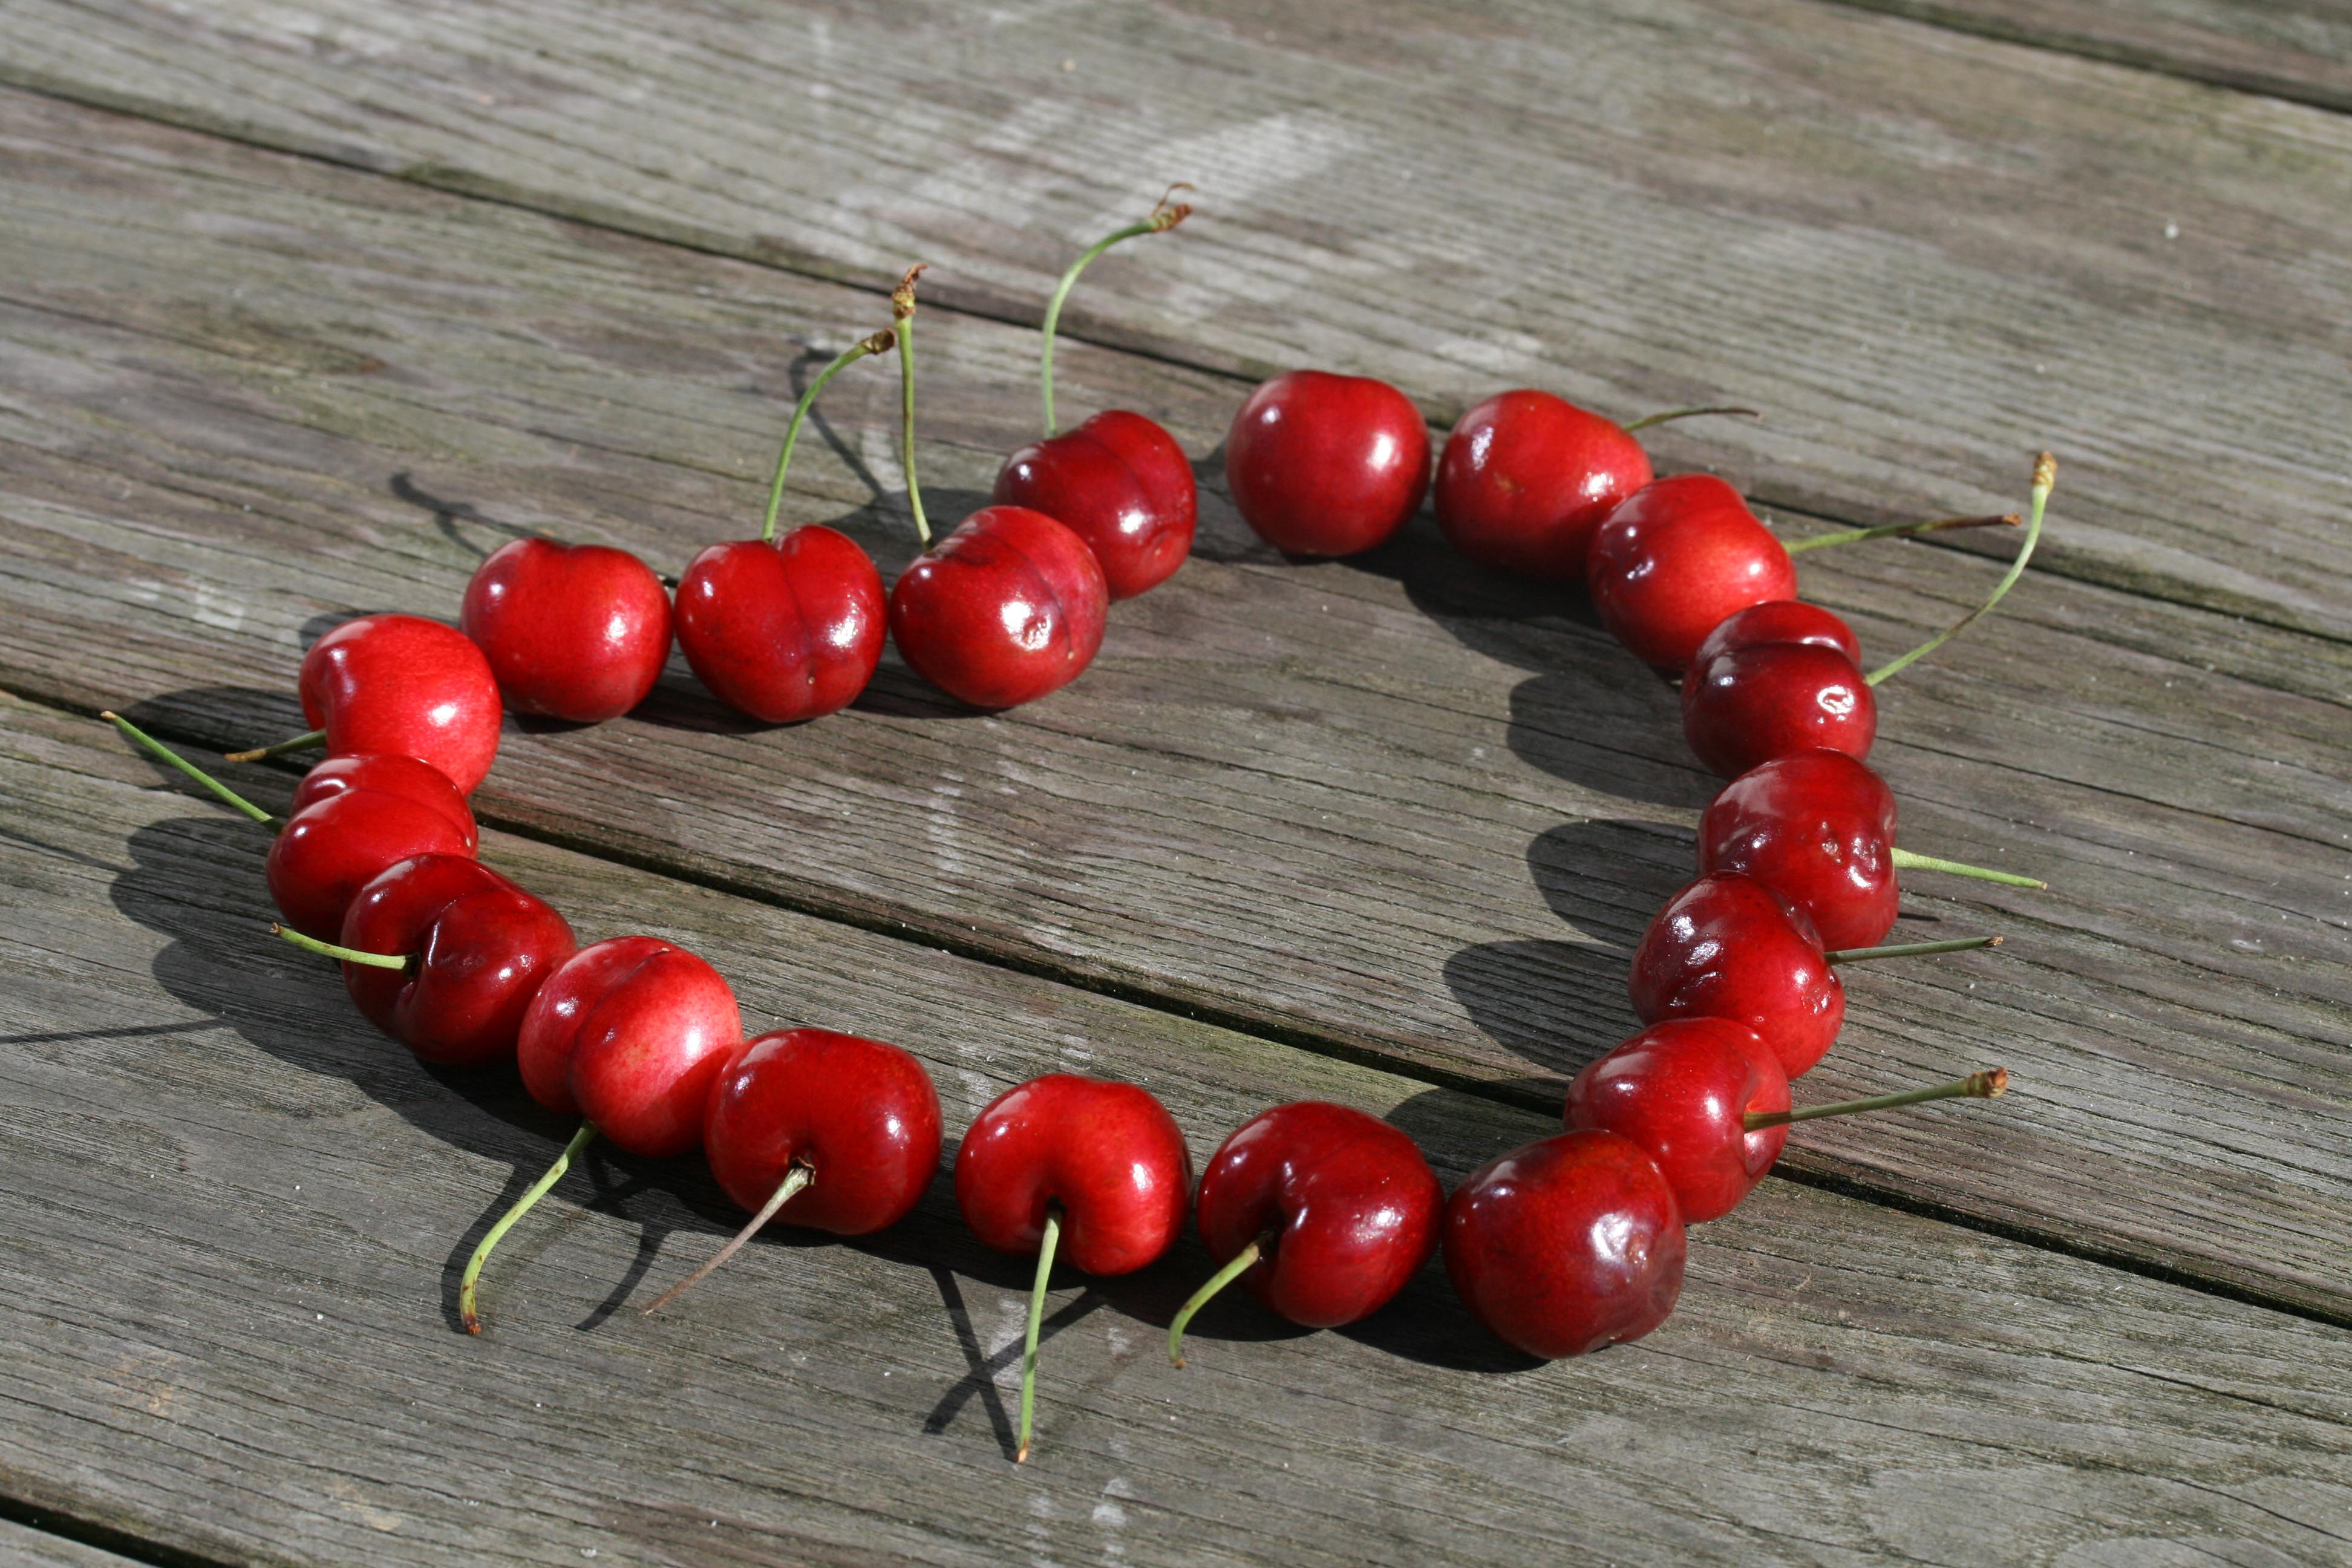 Fall in love with your sweet life, by Judith Cronauer